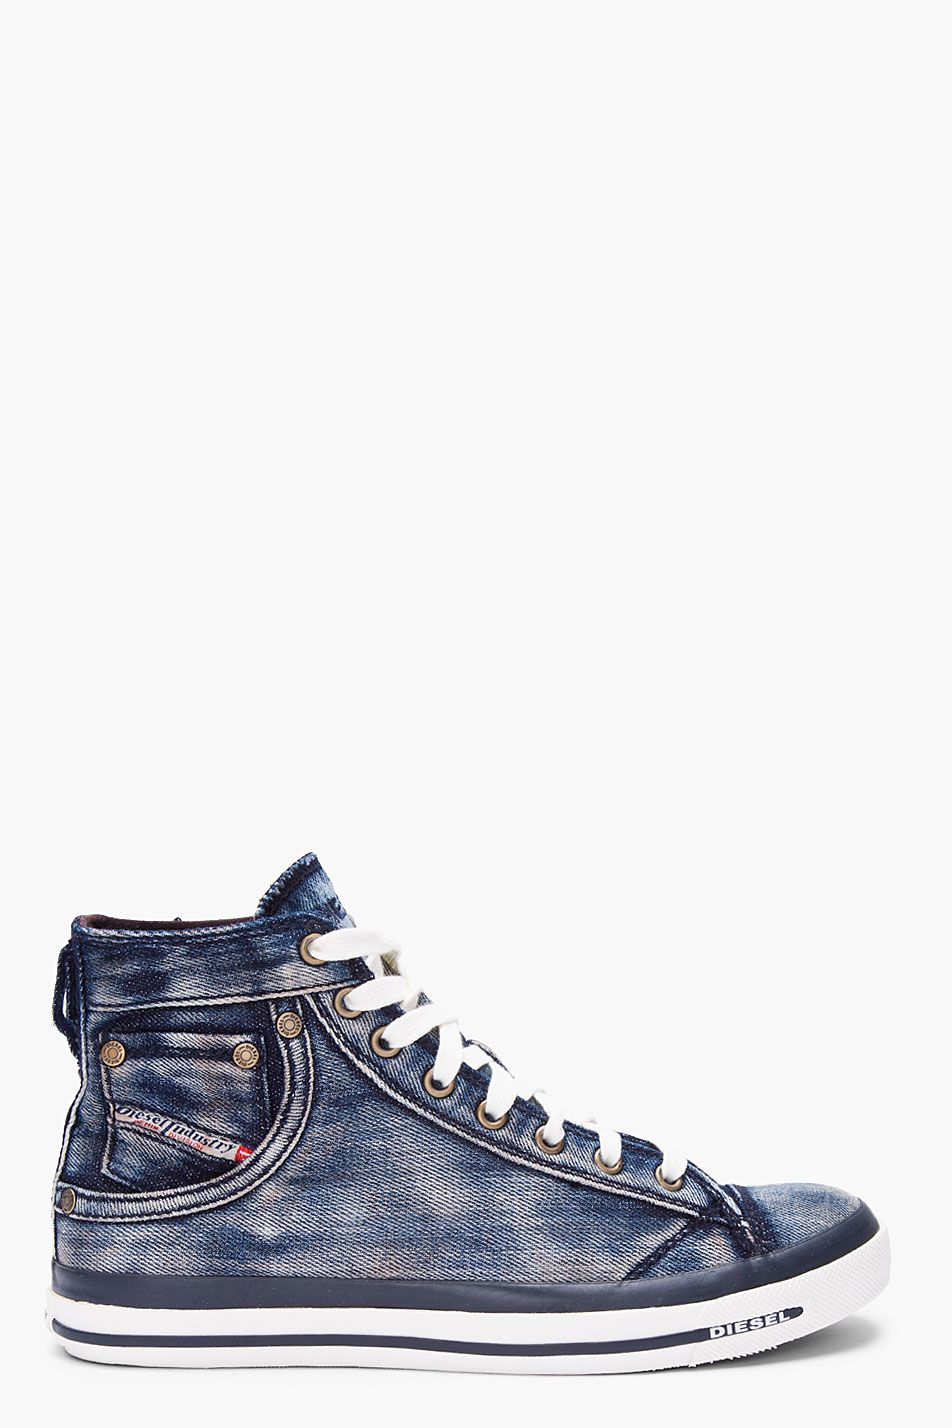 Diesel Washed Denim Exposure Sneakers in Blue for Men (denim ... 45b9f5eb31